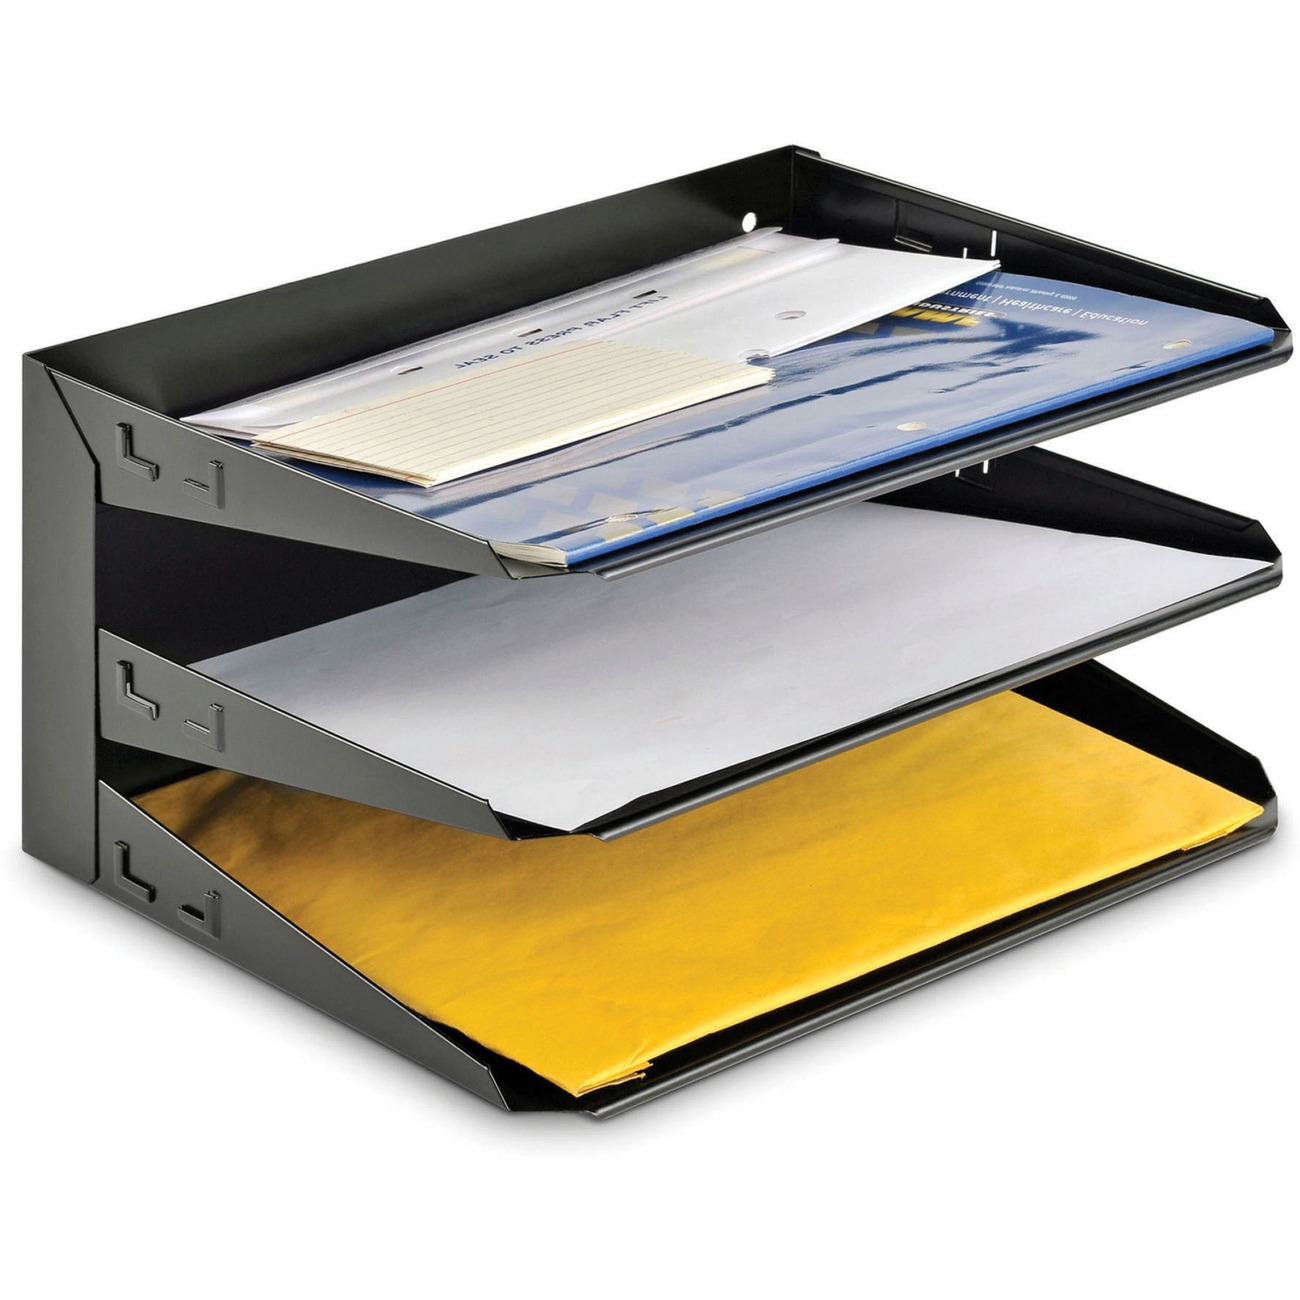 Mmf Horizontal Desk File Trays 3 Tier S 12 1 Height X Width 8 Depth Desktop Wall Mountable Partition Recycled Black Steel